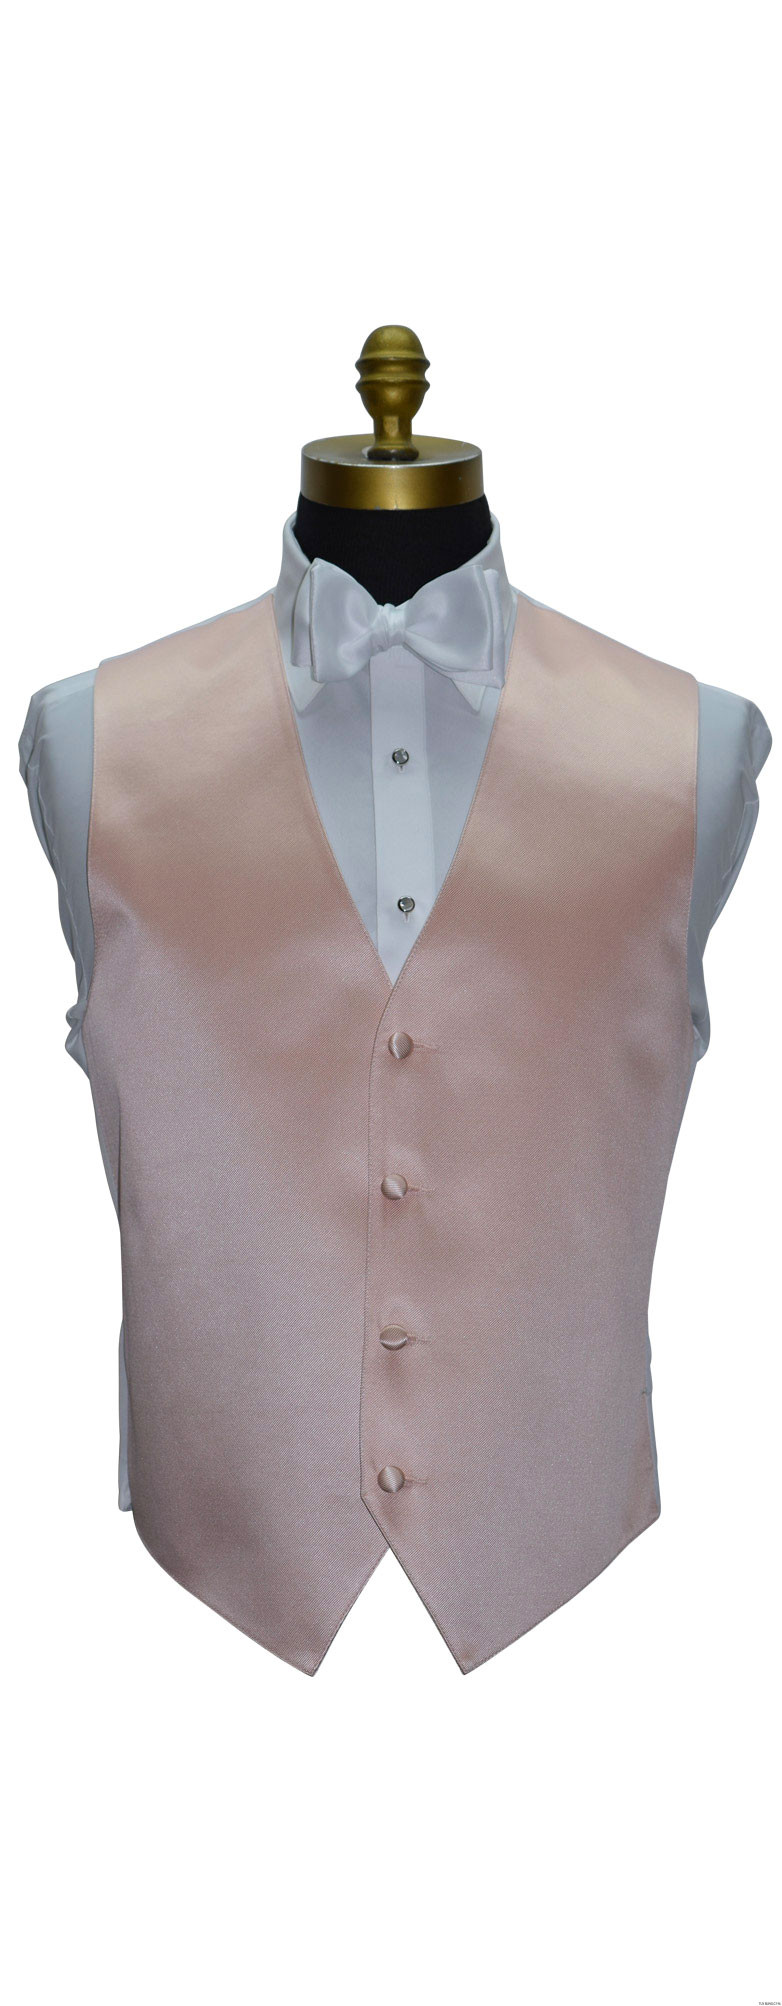 men's and boy's blush vest with white tie-yourself bowtie by San Miguel Formals